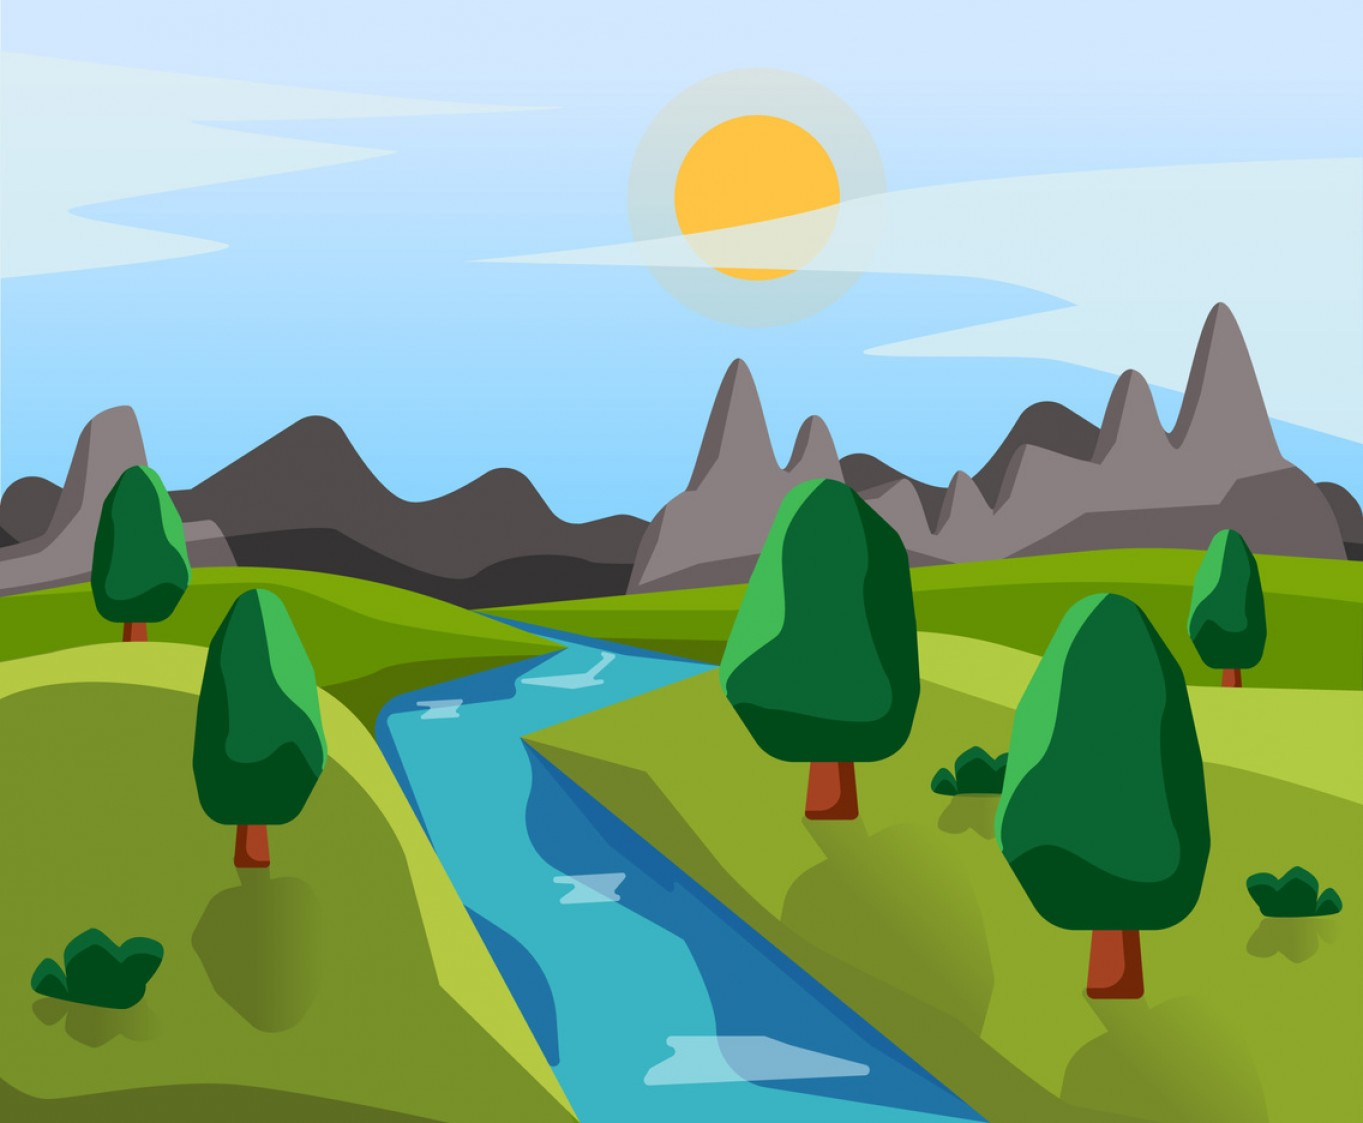 River Vector Art: Spring Landscape With River Vector